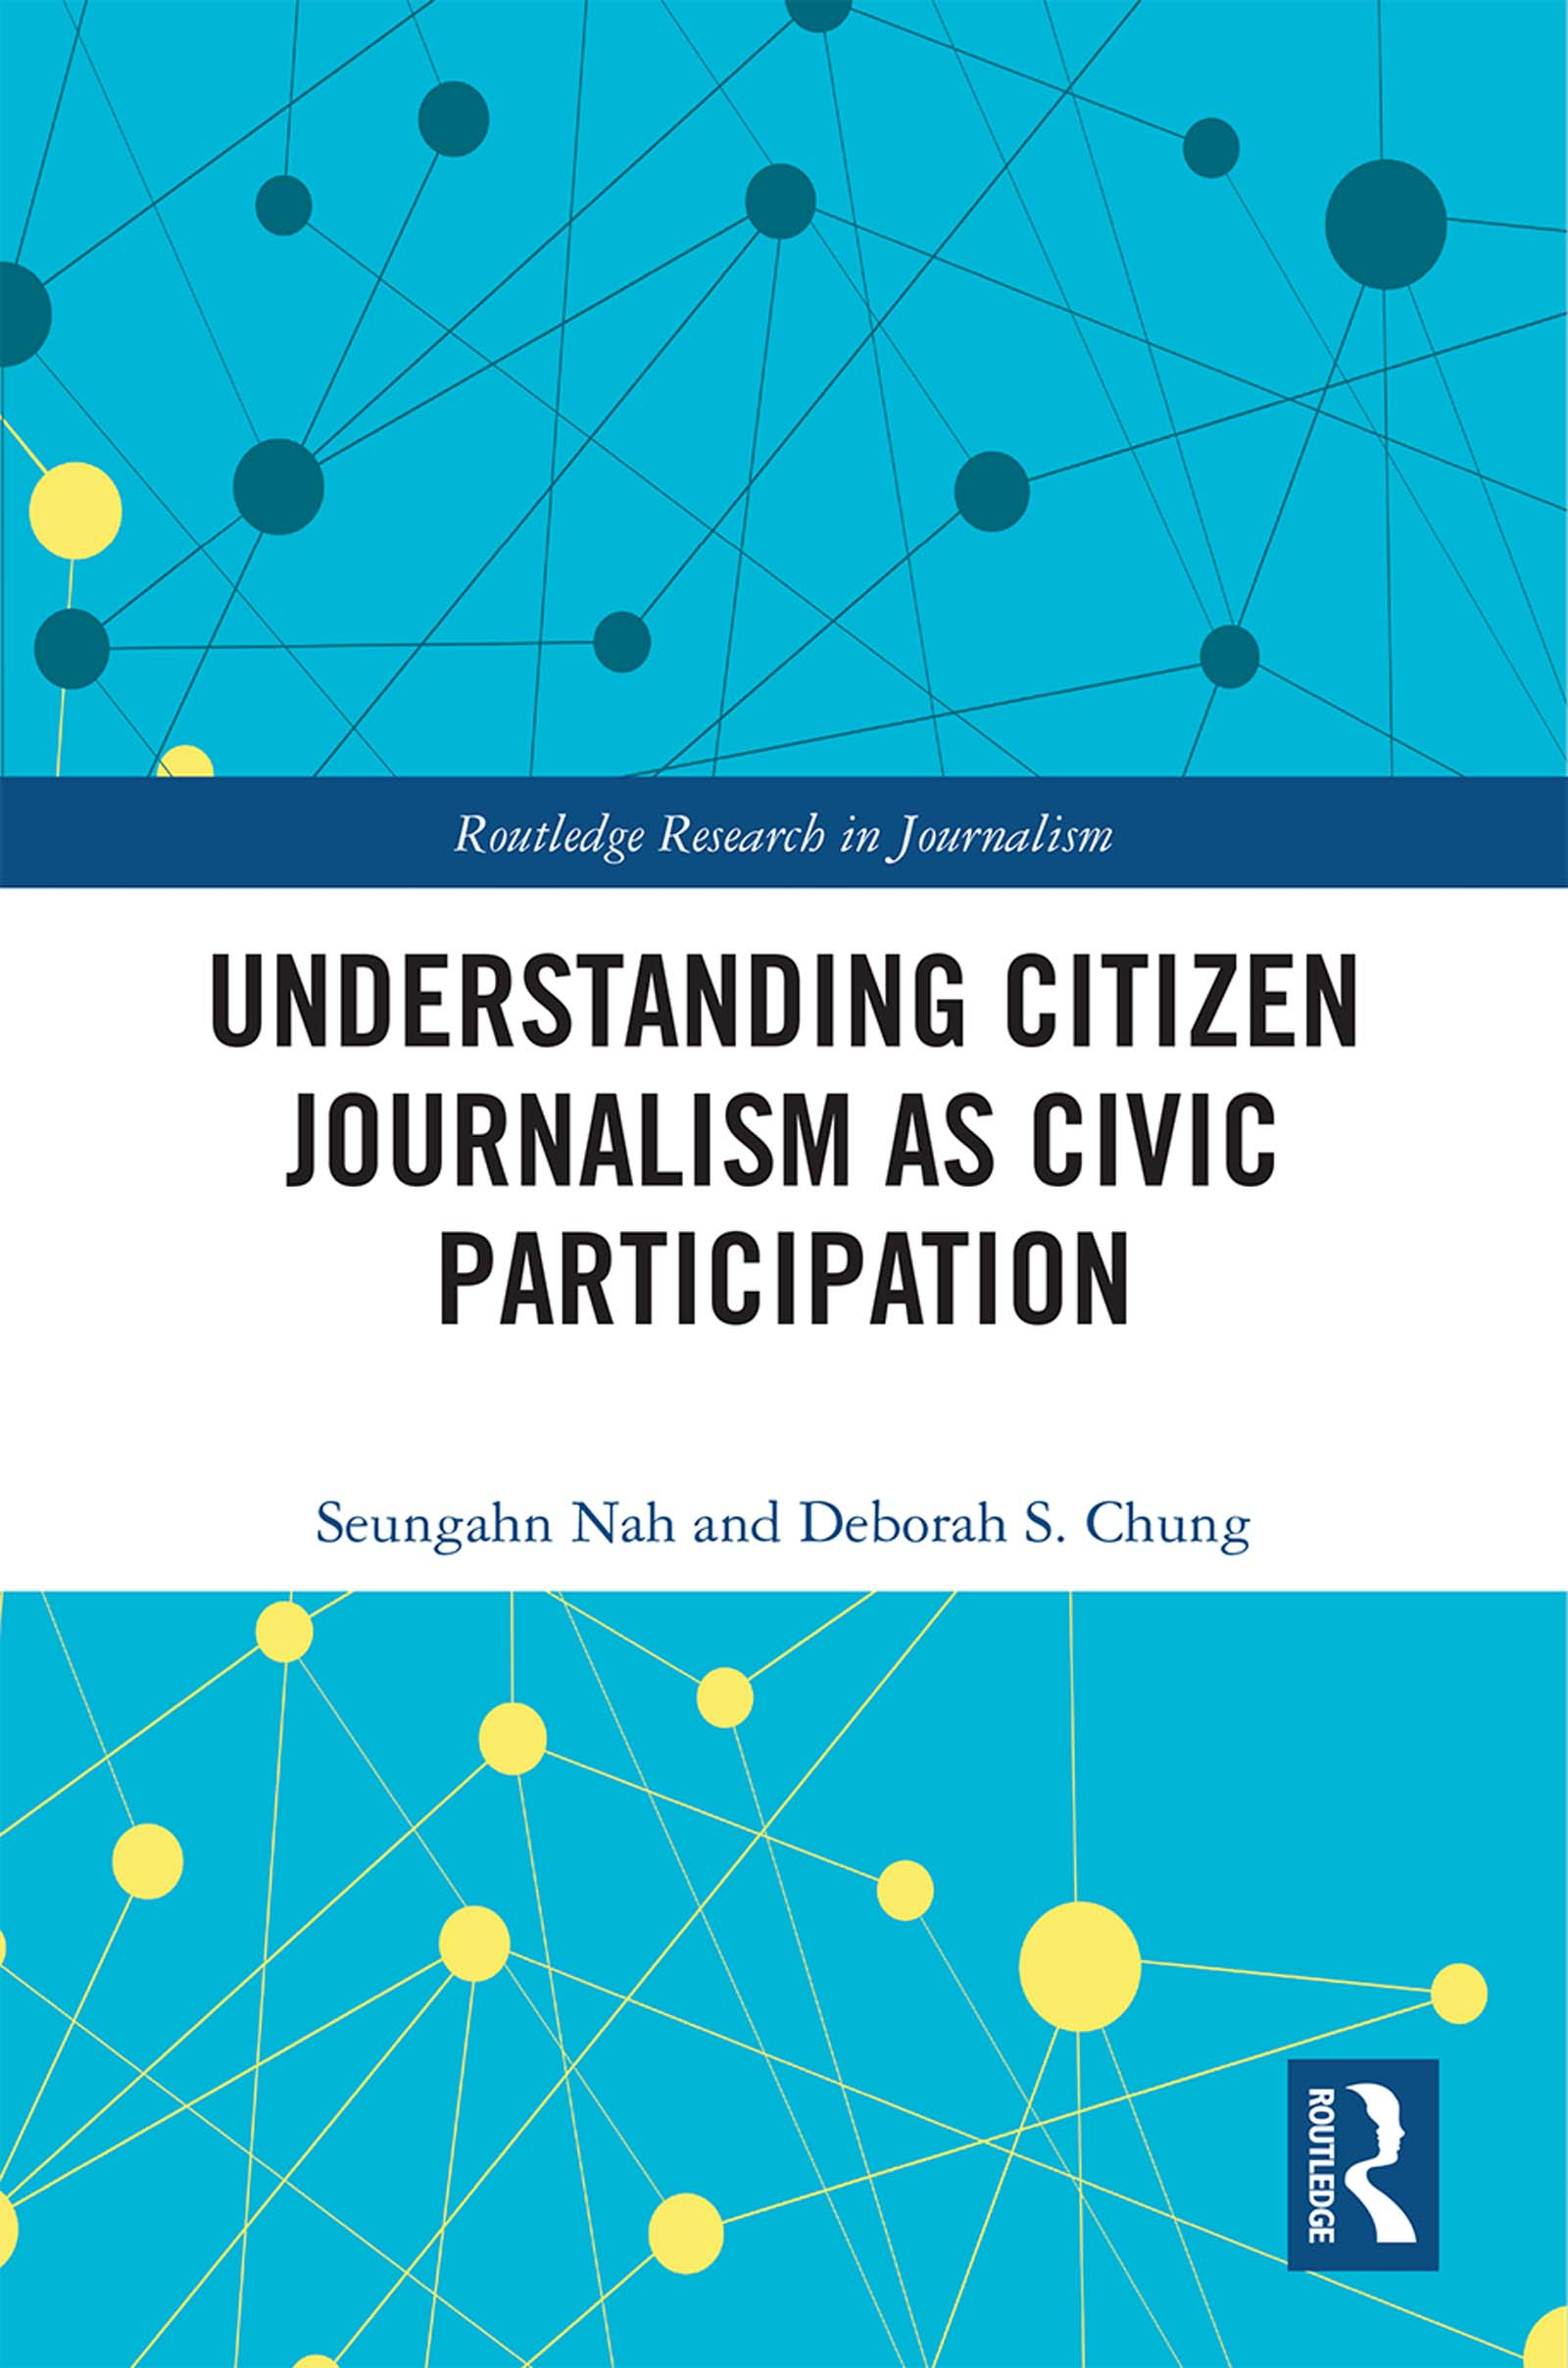 Understanding Citizen Journalism as Civic Participation book cover